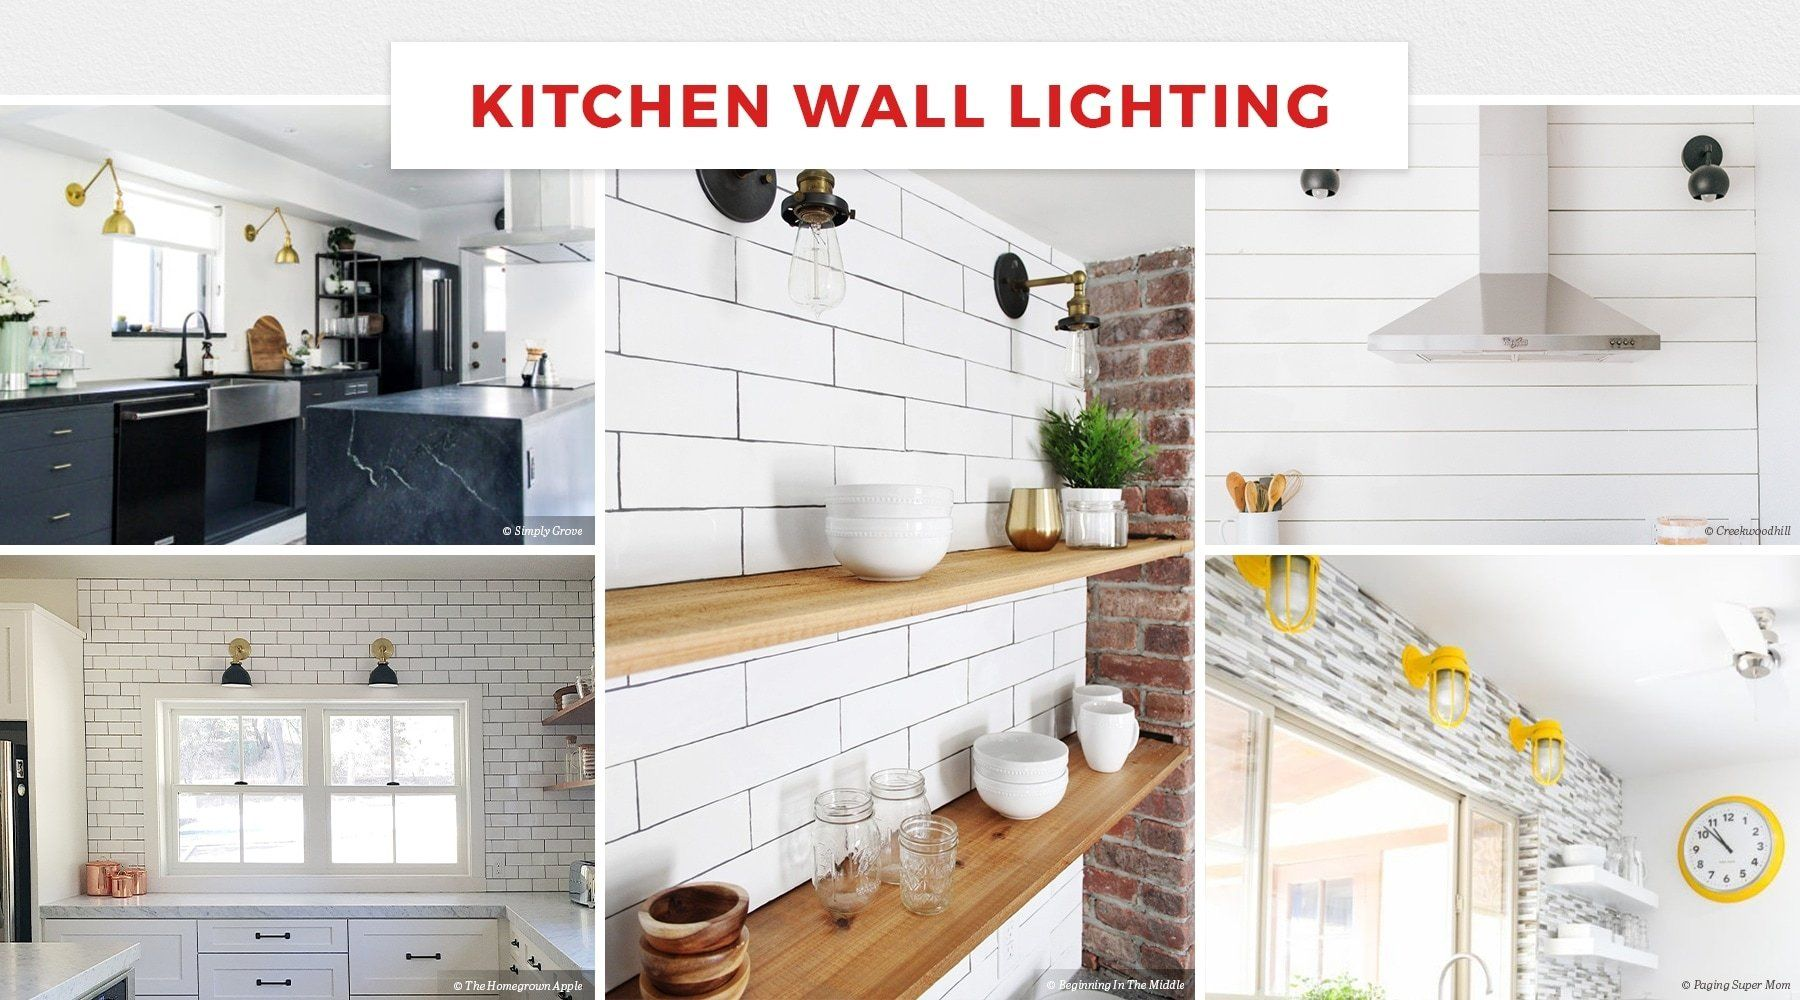 Kitchen Wall Lighting Is Great For Illuminating Open Shelving Or